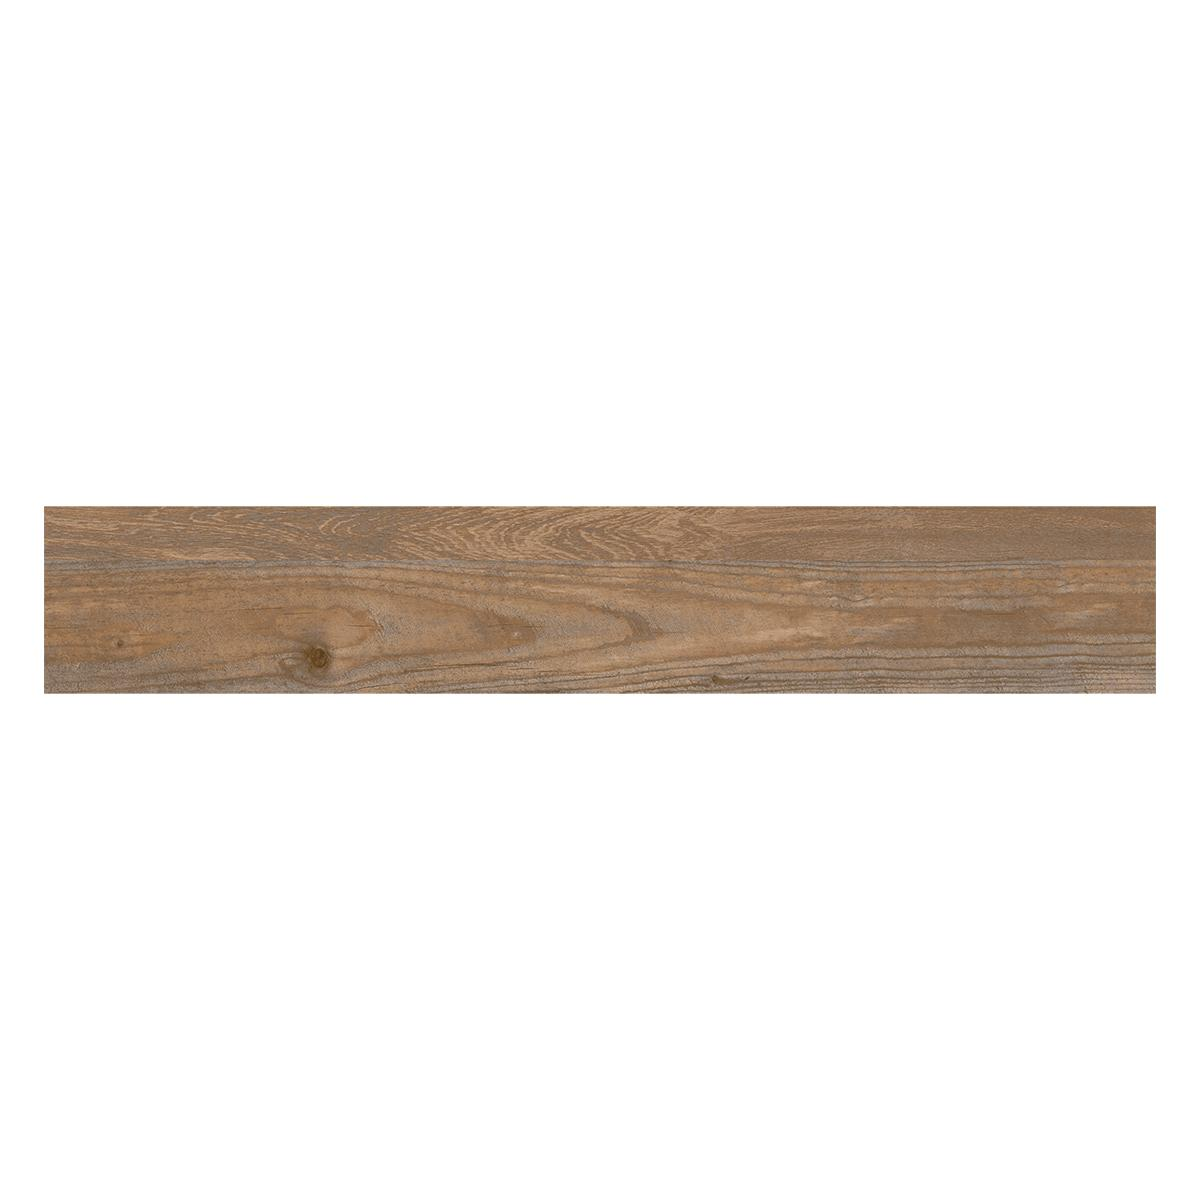 Gres Porcelánico Woodstock II Gris/Marrón Oscuro Mate - 19X118 cm - 1.32 m2